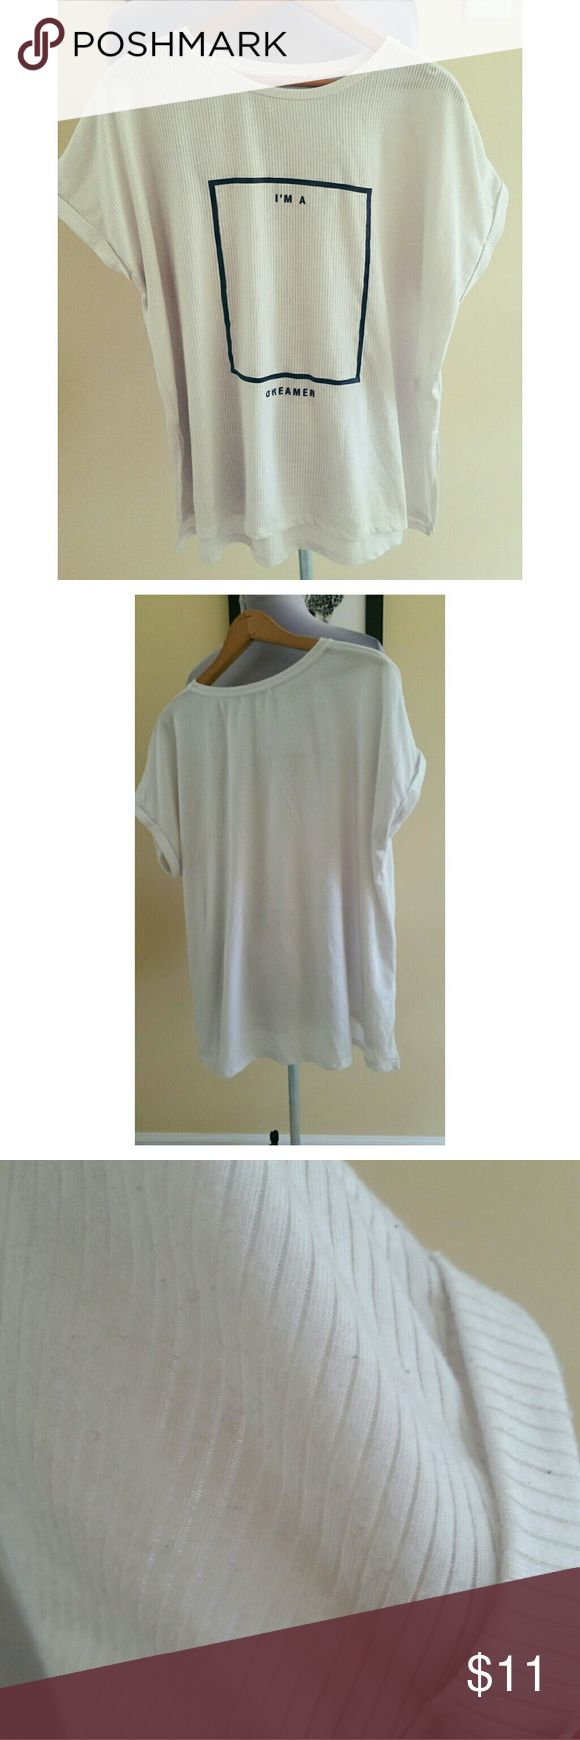 """White graphic tee """"I'M A DREAMER"""" Ribbed tee, great fit and slit sides. Small stain on the front (could be removed with bleach, I believe). Pull&Bear brand, a Zara company. Pull&Bear Tops Tees - Short Sleeve"""